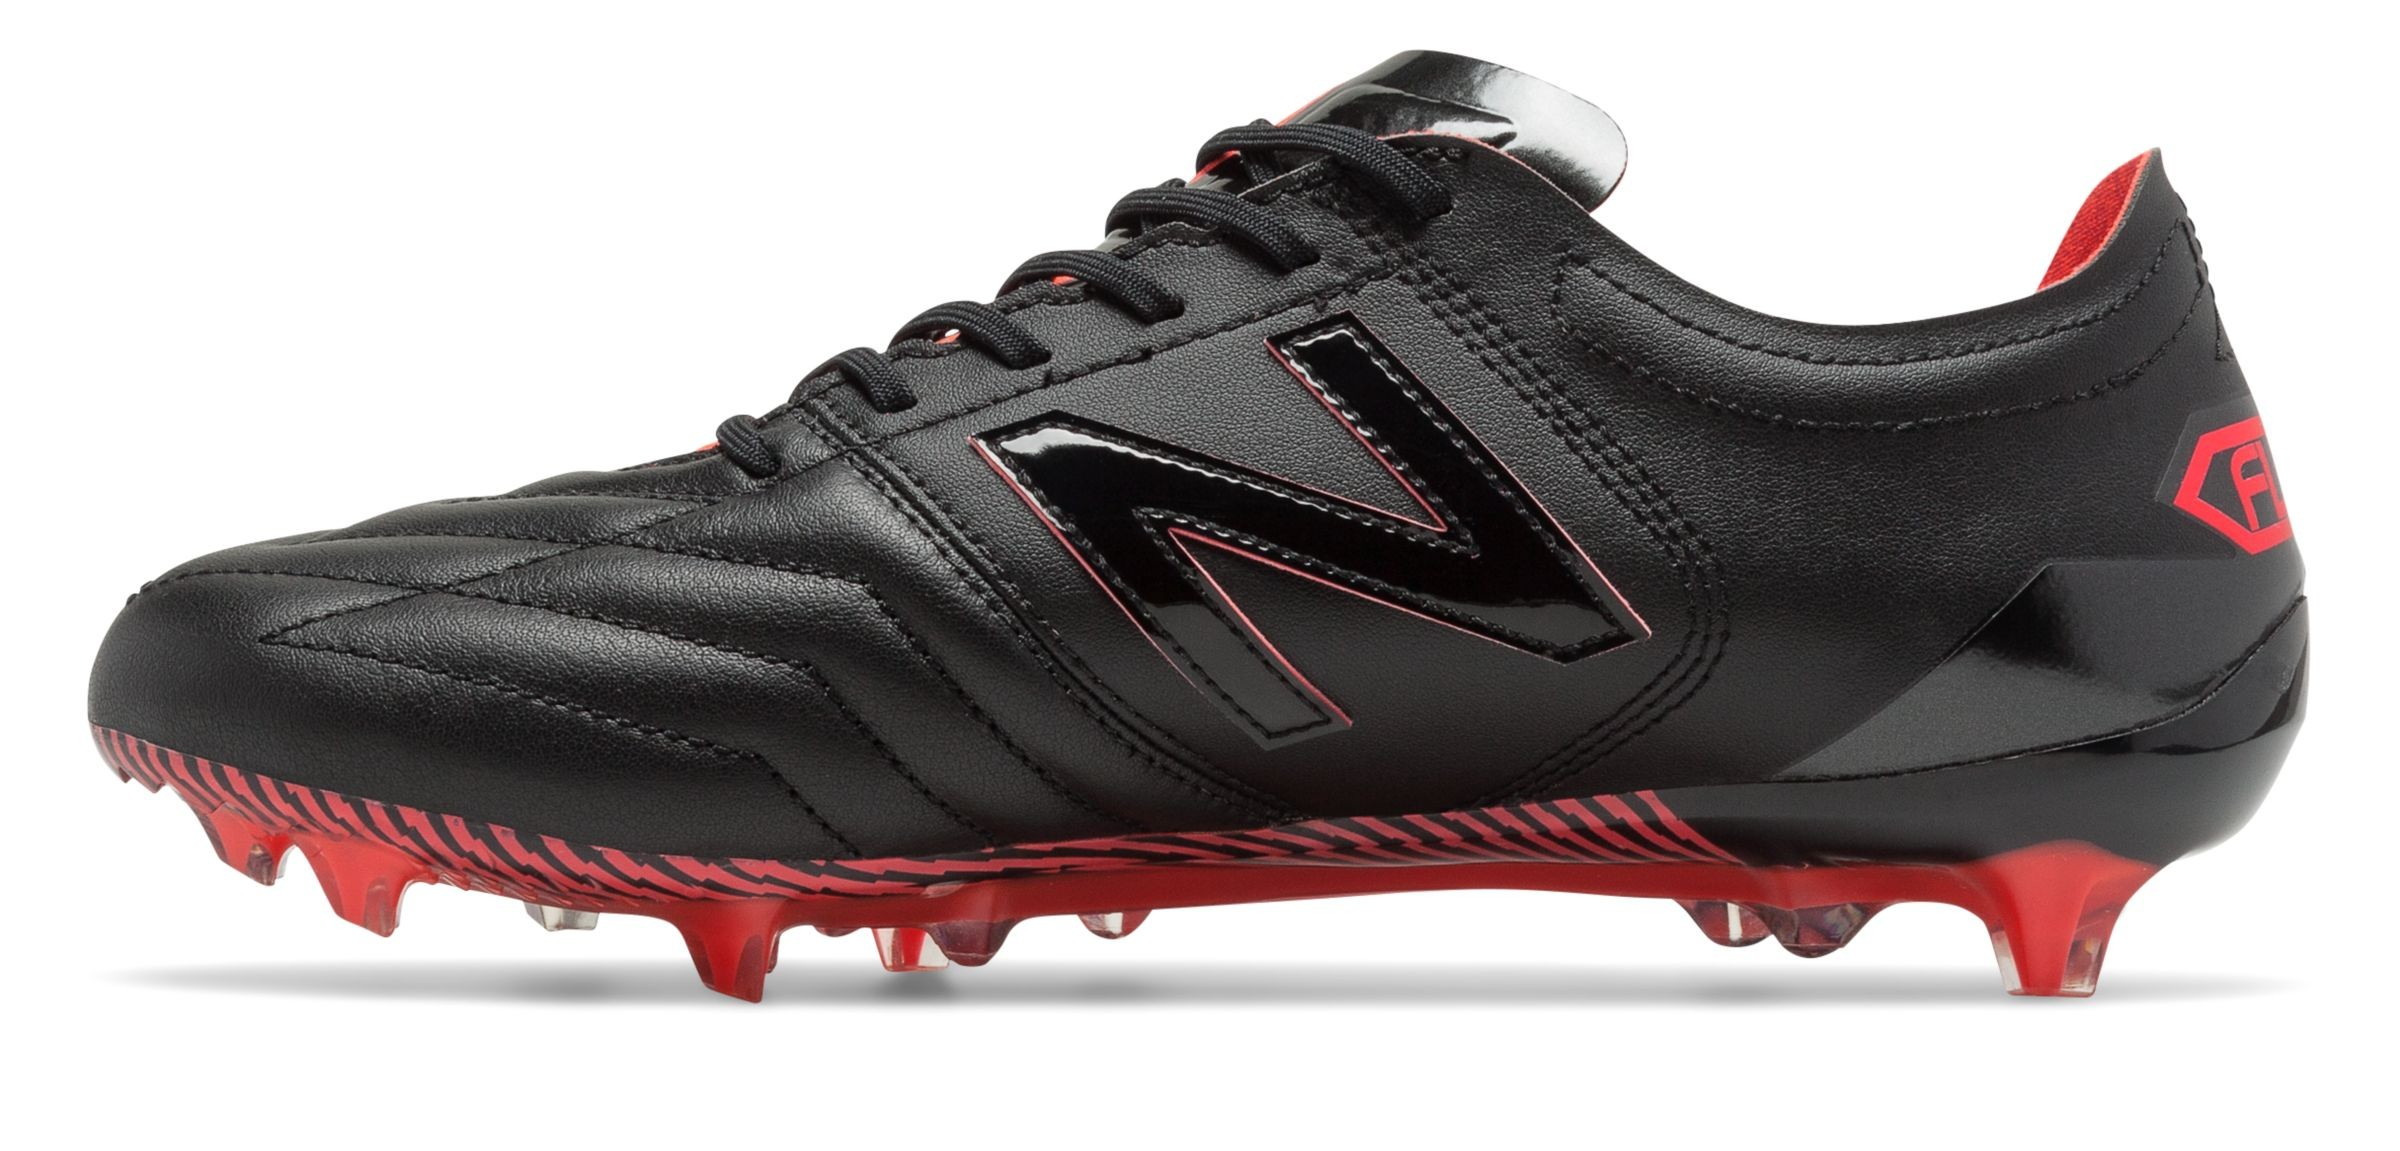 b9955e51ca4 ... Click to enlarge image  new balance furon 3 0 k leather fg black energy red g.jpg ...